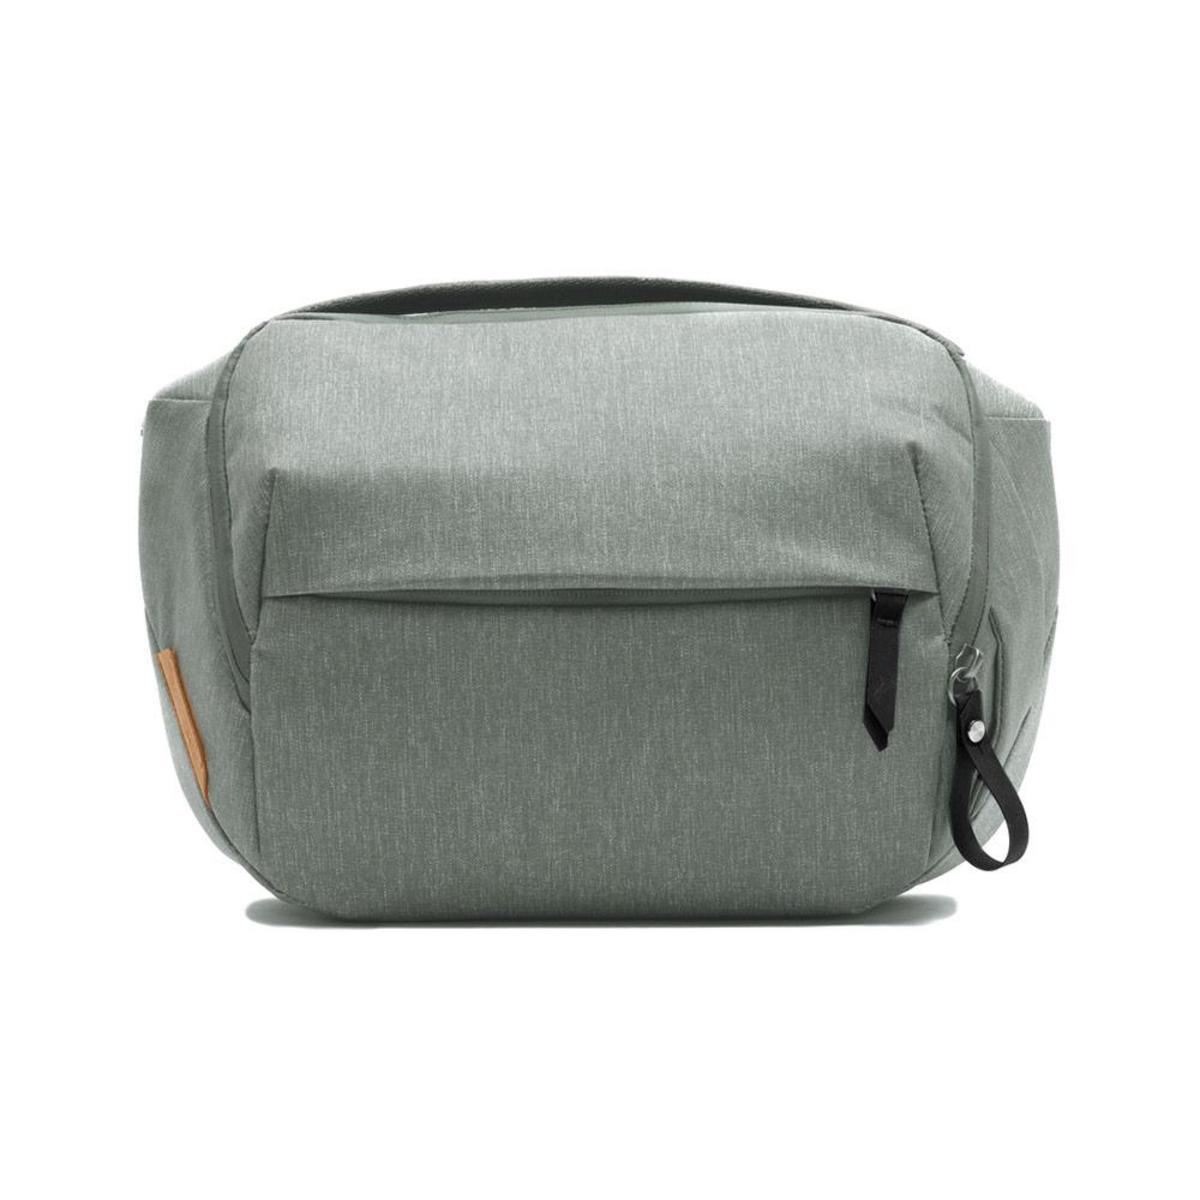 Everyday Sling 5L(Sage Green) (Authorized goods)